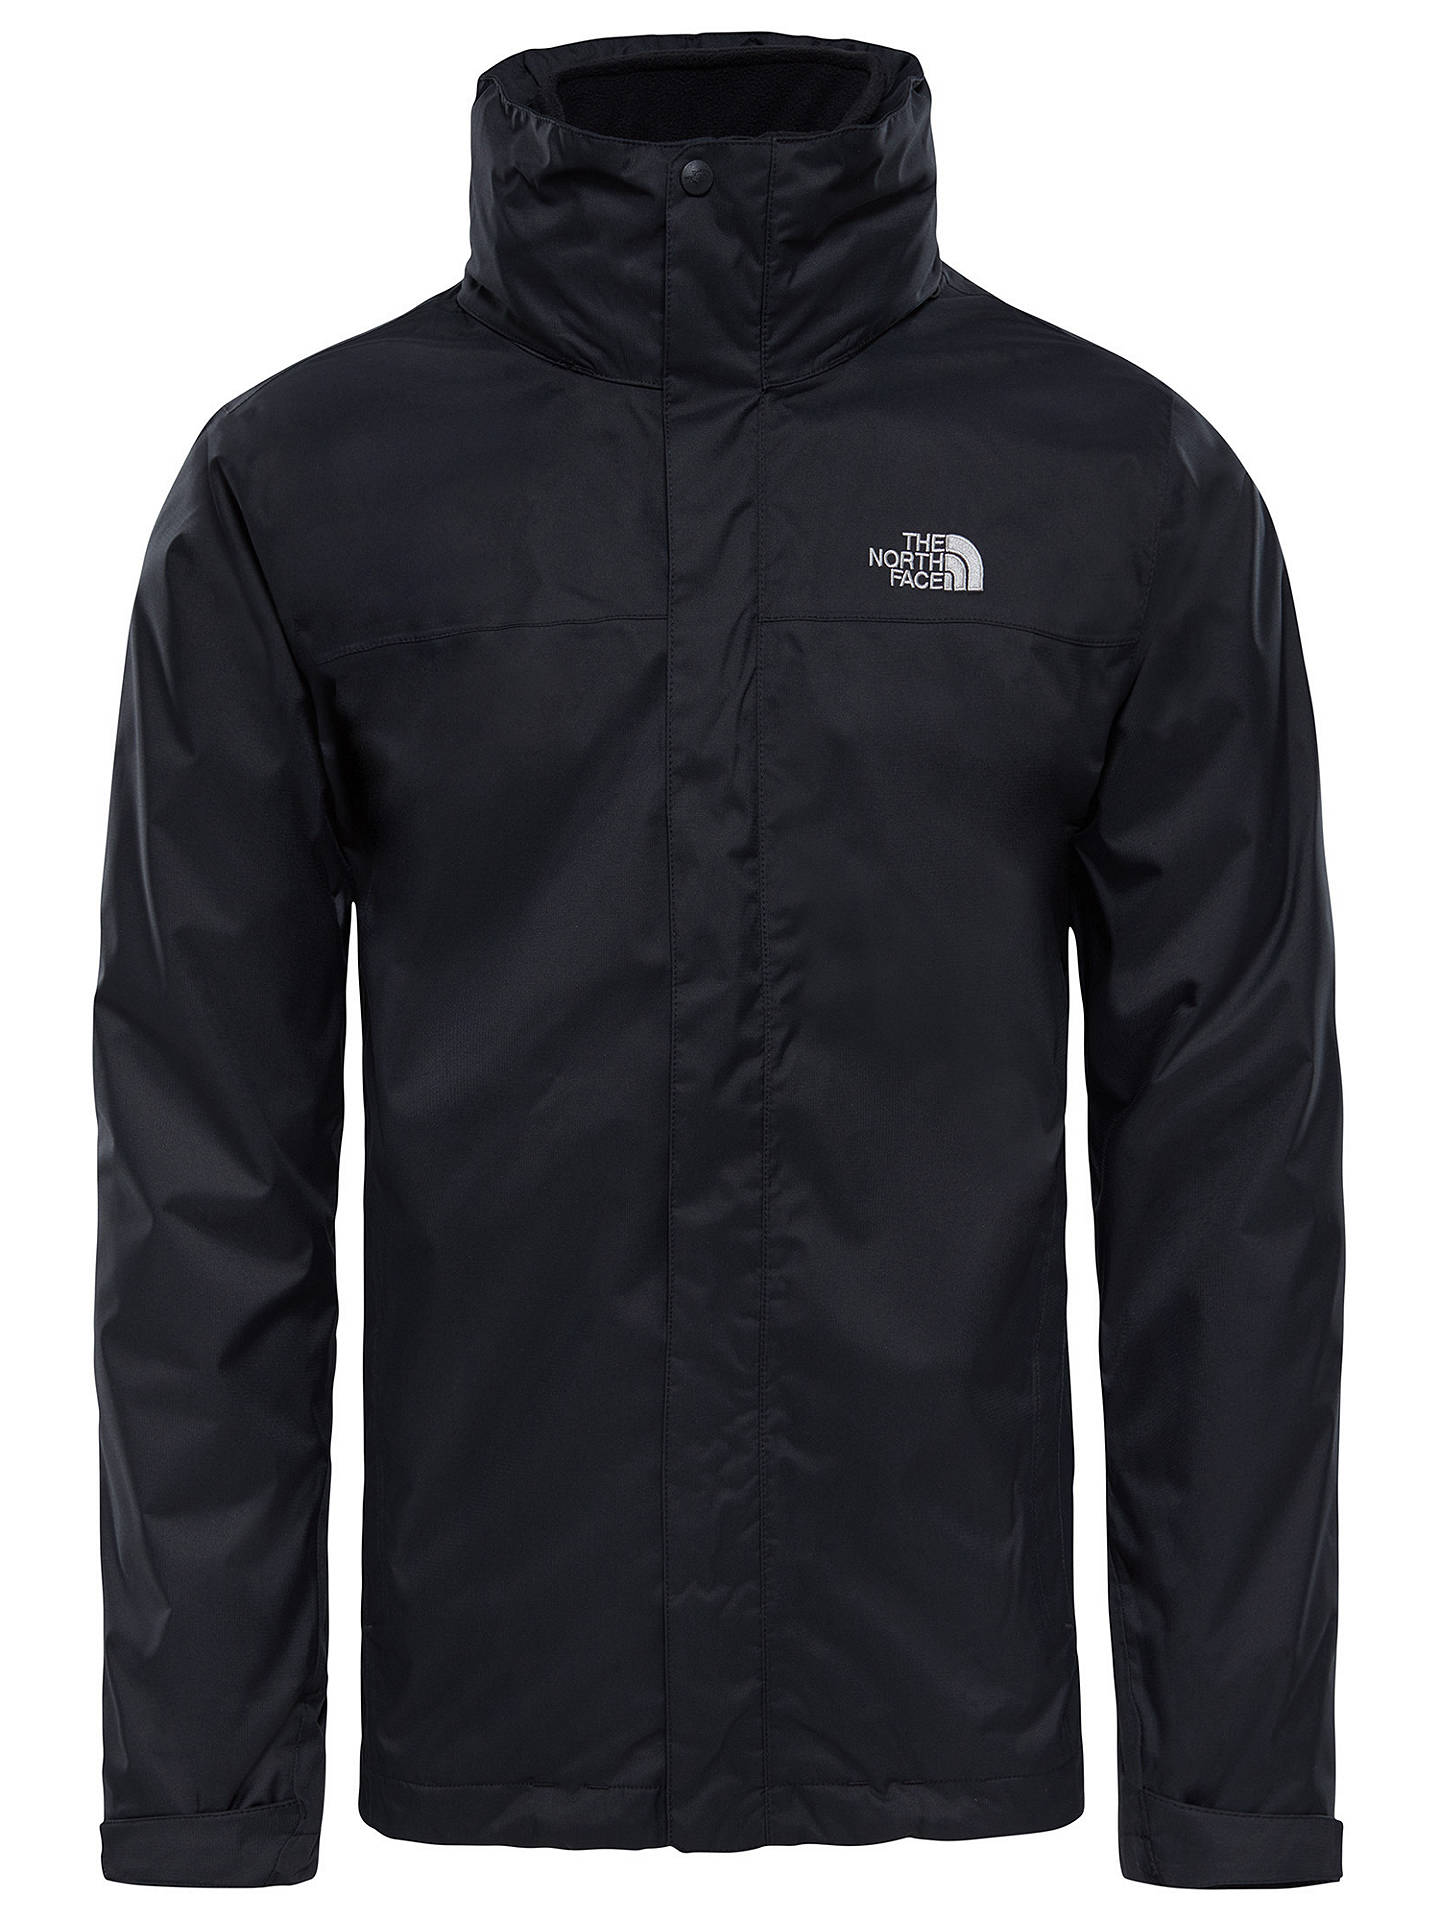 7f622804f The North Face Evolve II Triclimate 3-in-1 Waterproof Men's Jacket, Black